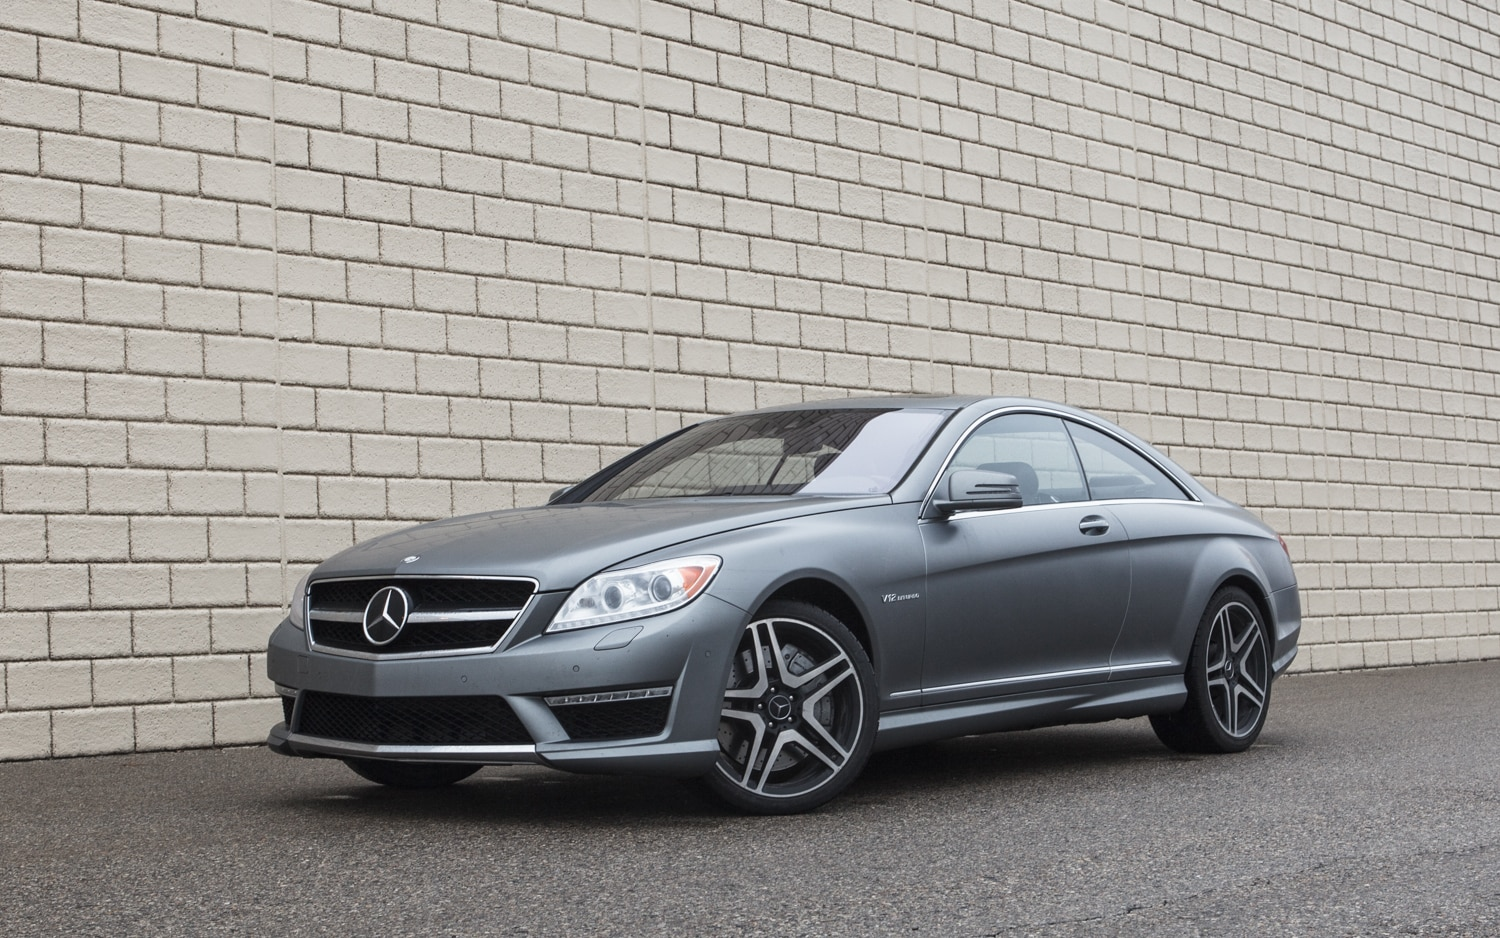 2013 Mercedes Benz CL63 AMG Front Left Side View 11